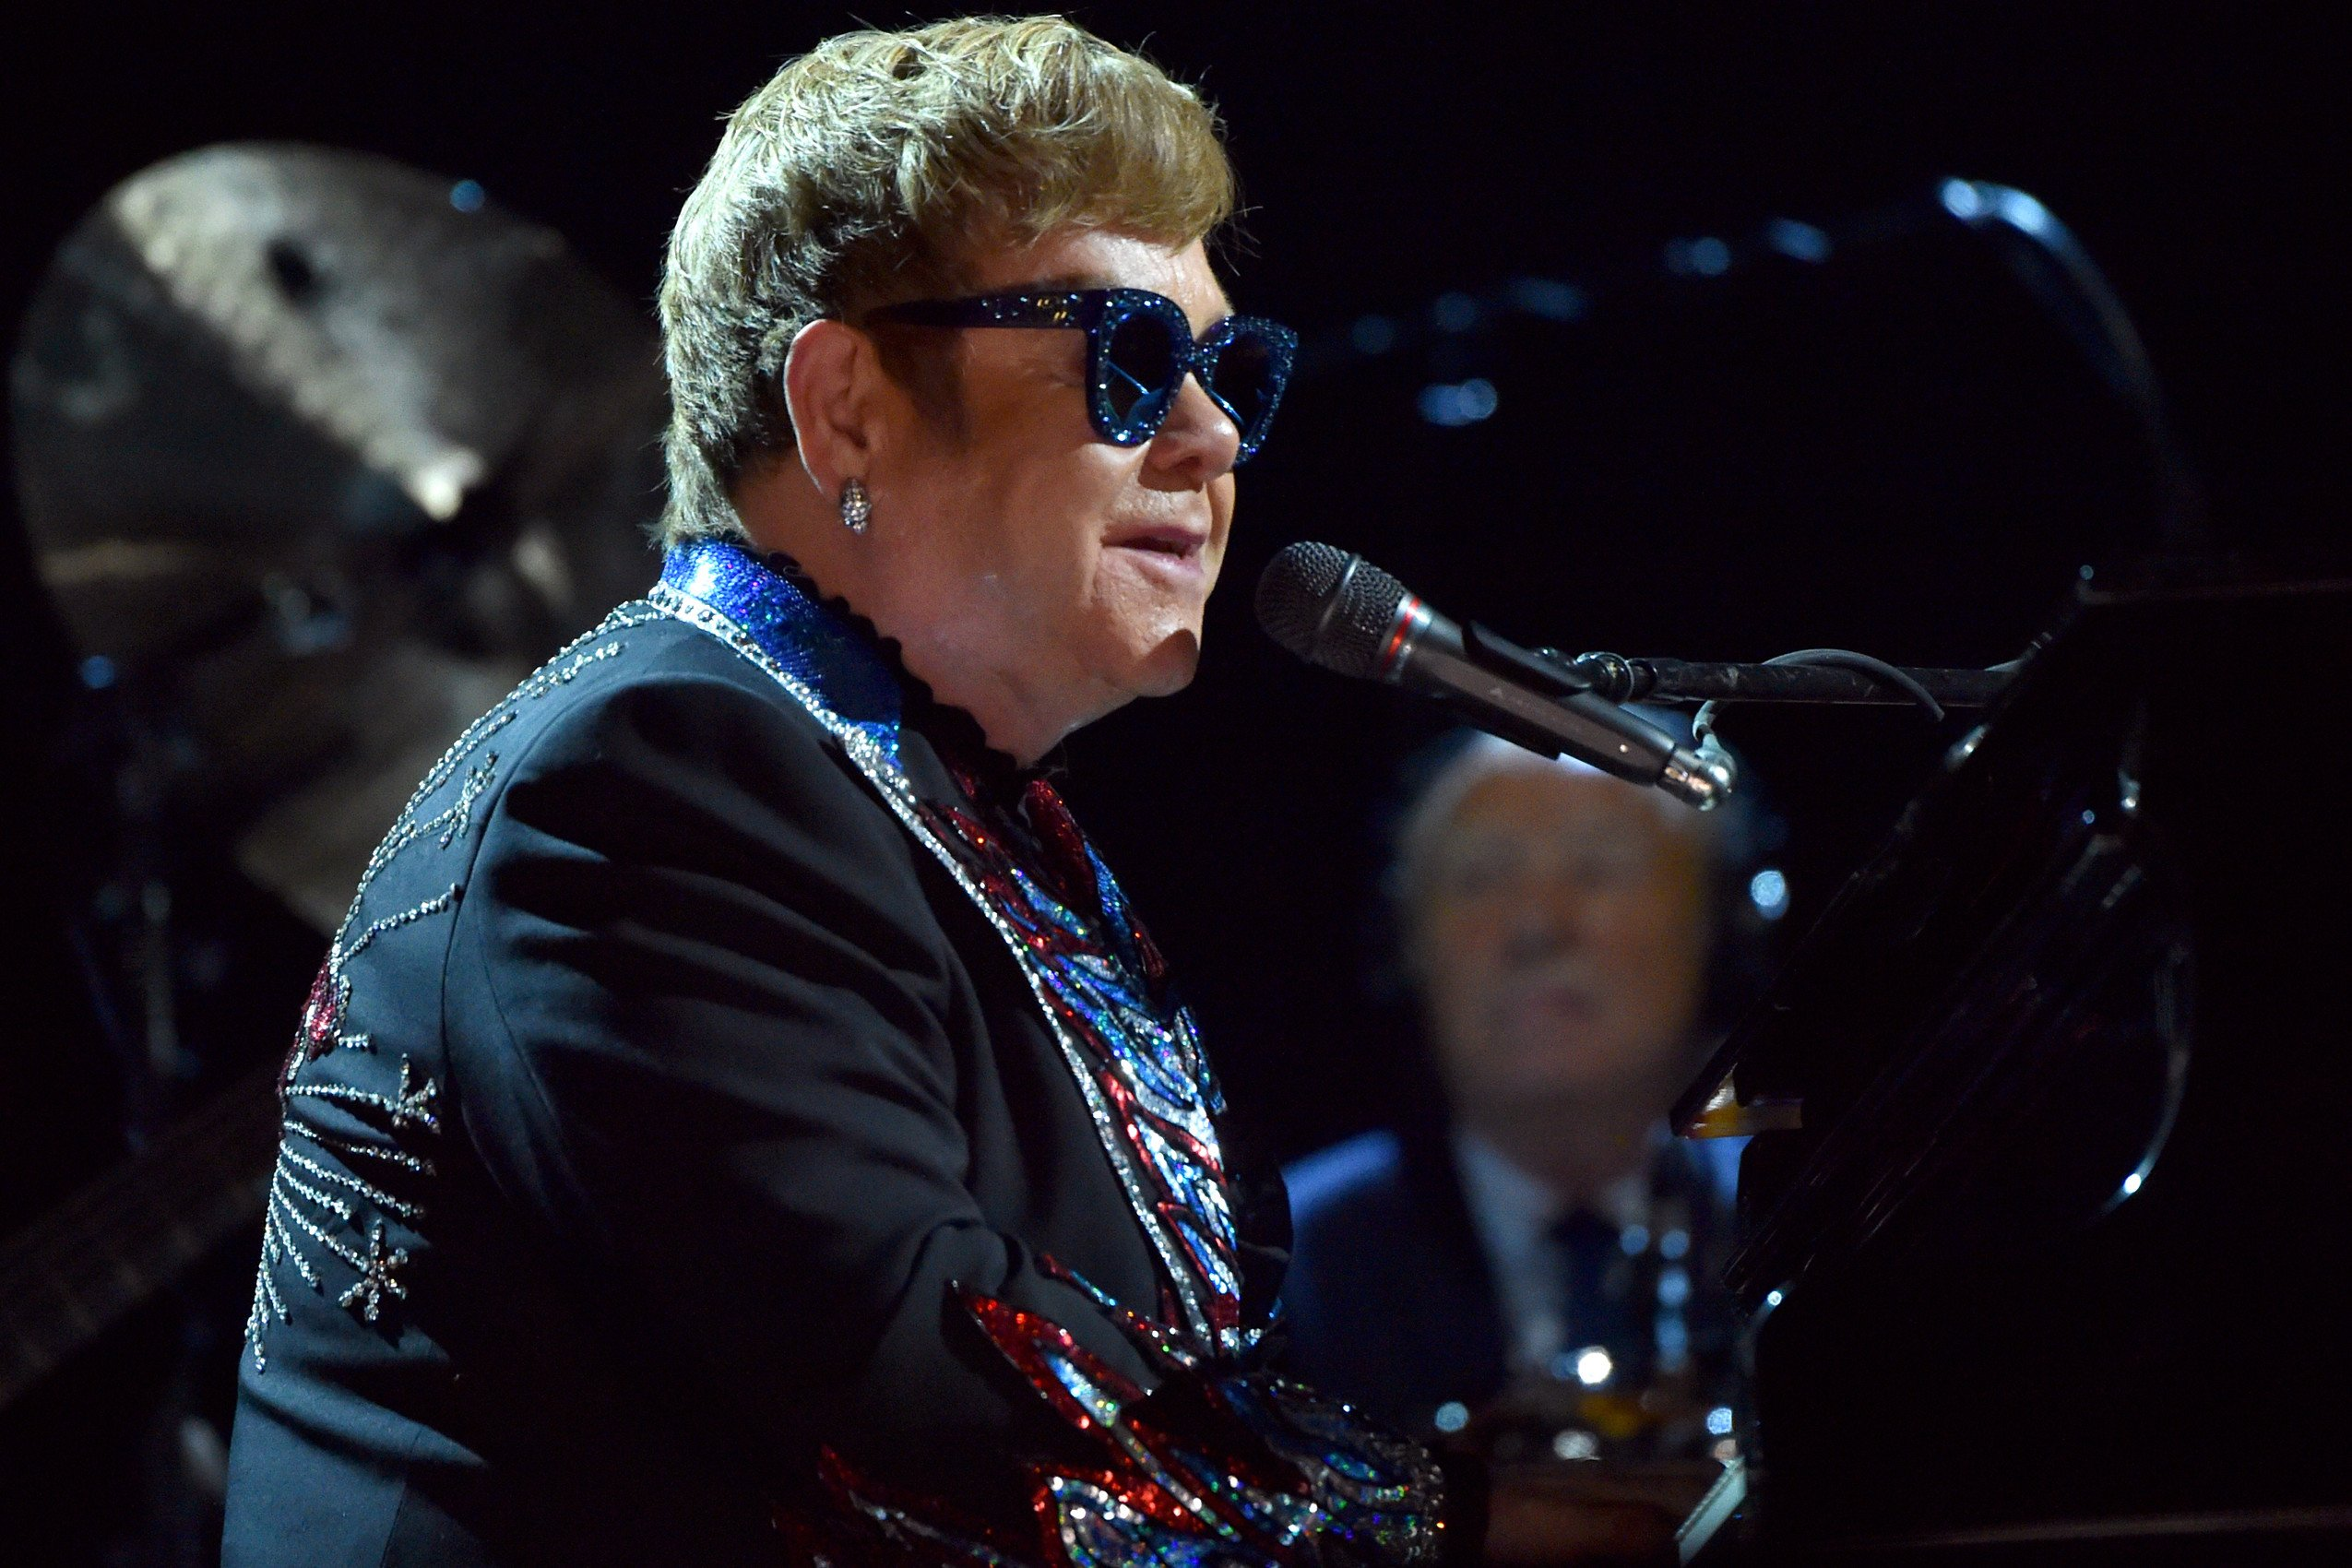 Elton John explains storming off stage, says fan was 'rude, disruptive'